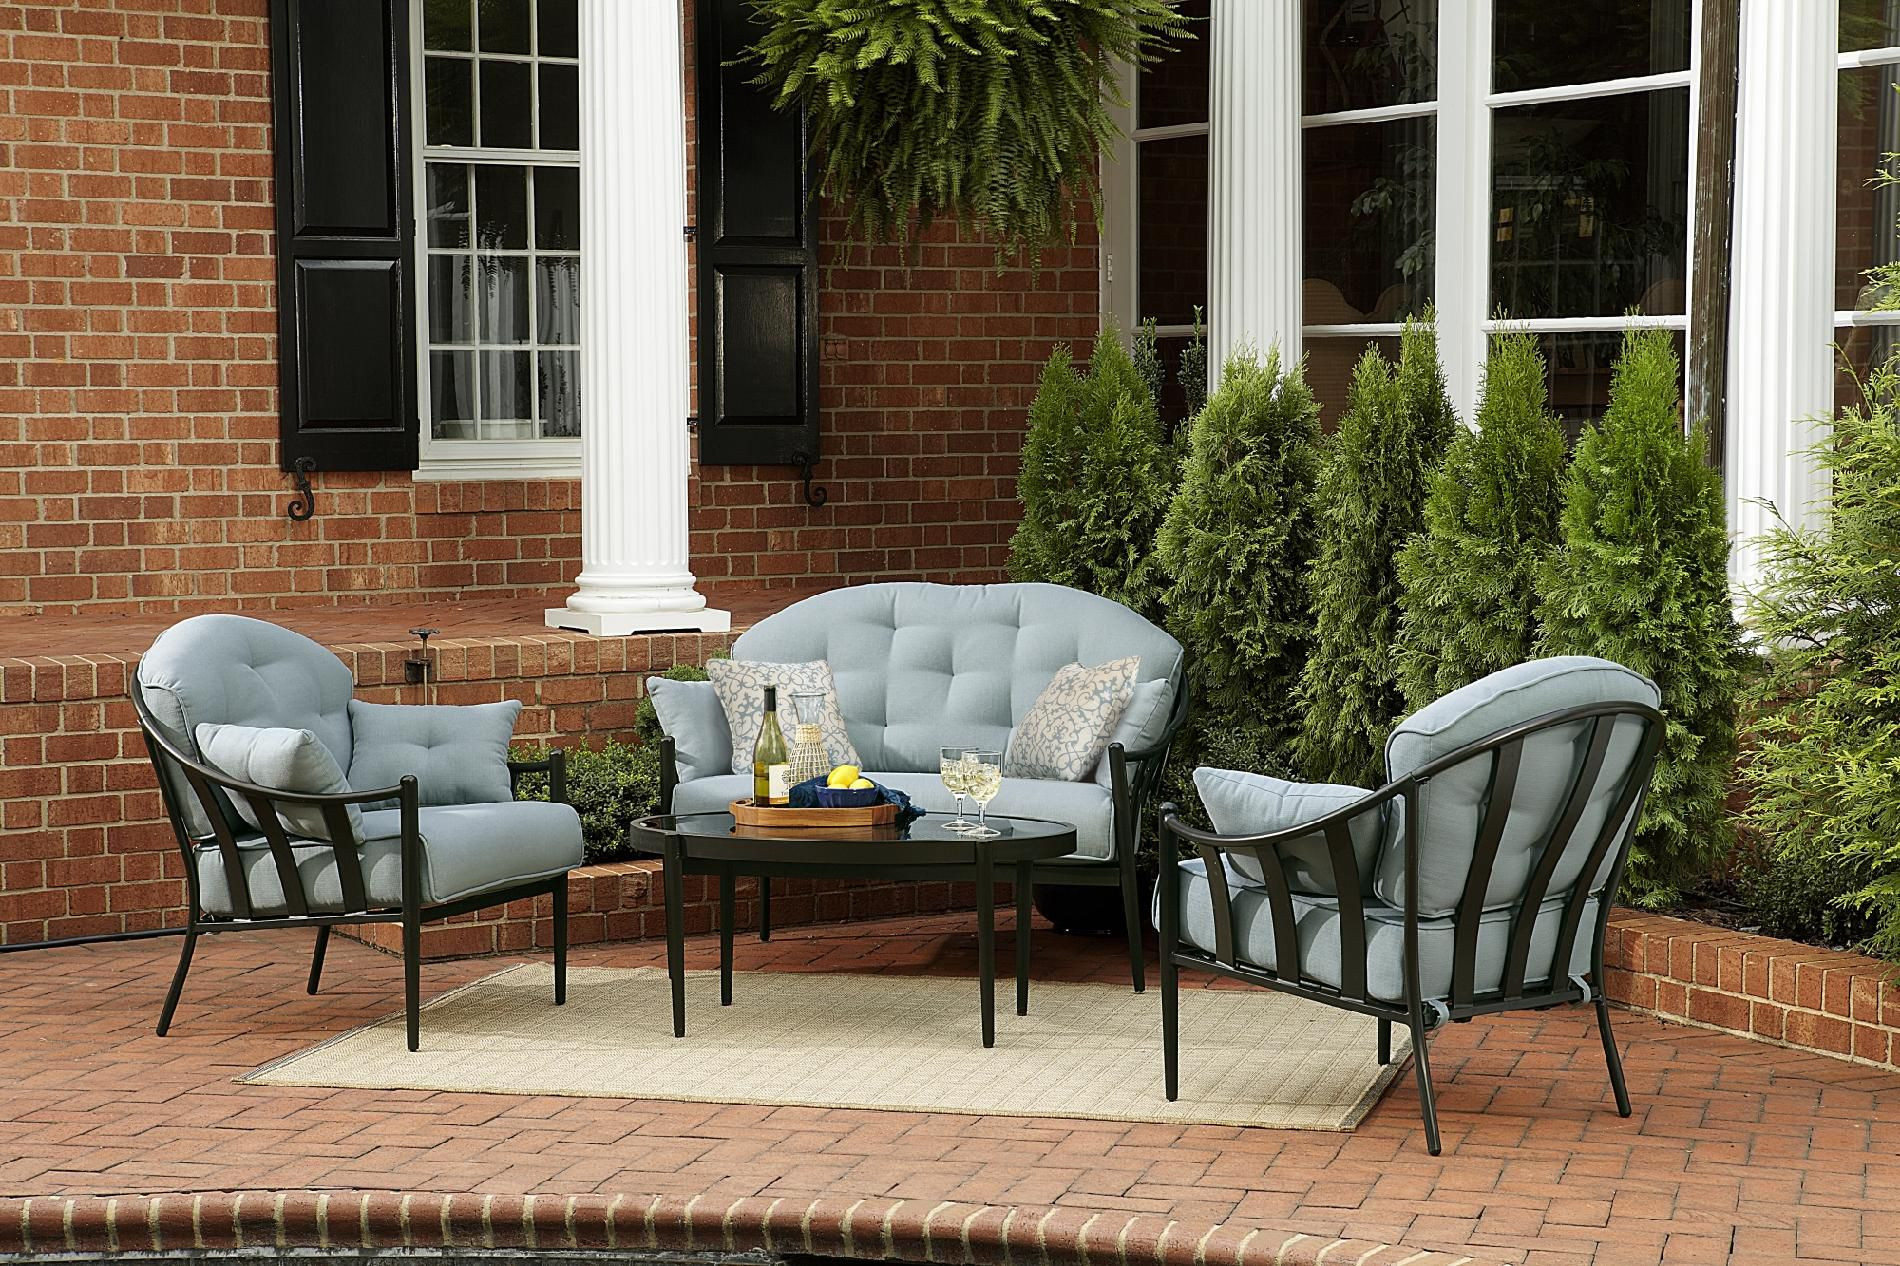 Best ideas about At Home Patio Furniture . Save or Pin Chandler 4pc Outdoor Seating Set Get Your Sumptuous Now.